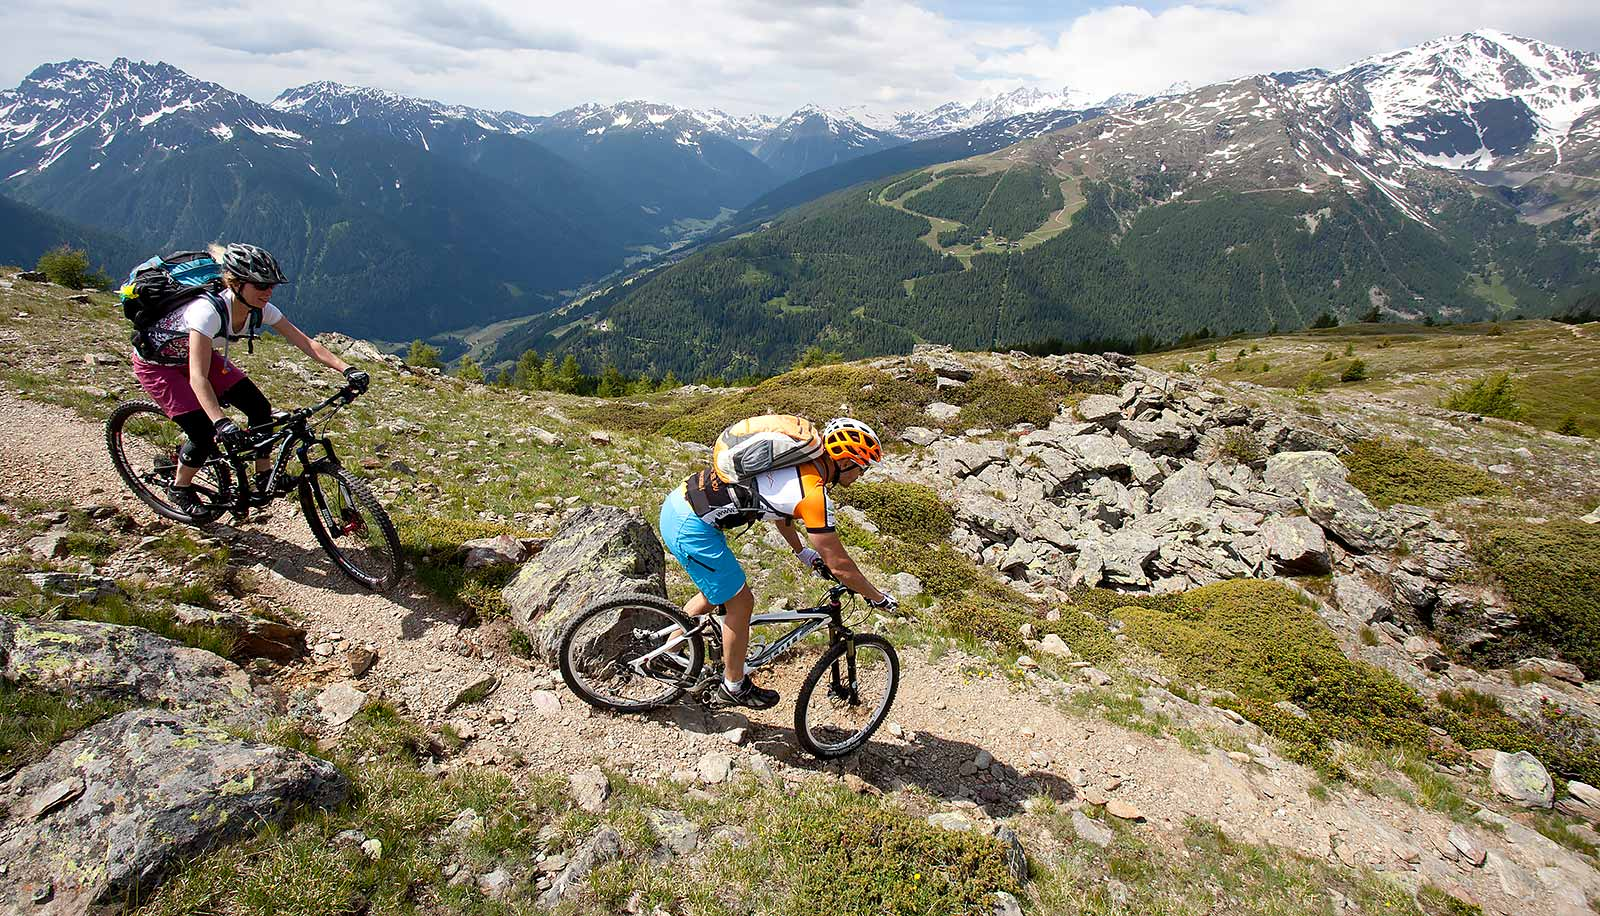 Two Mountain Bikers on a steep mountain path among the rocks with snowy mountains in the background